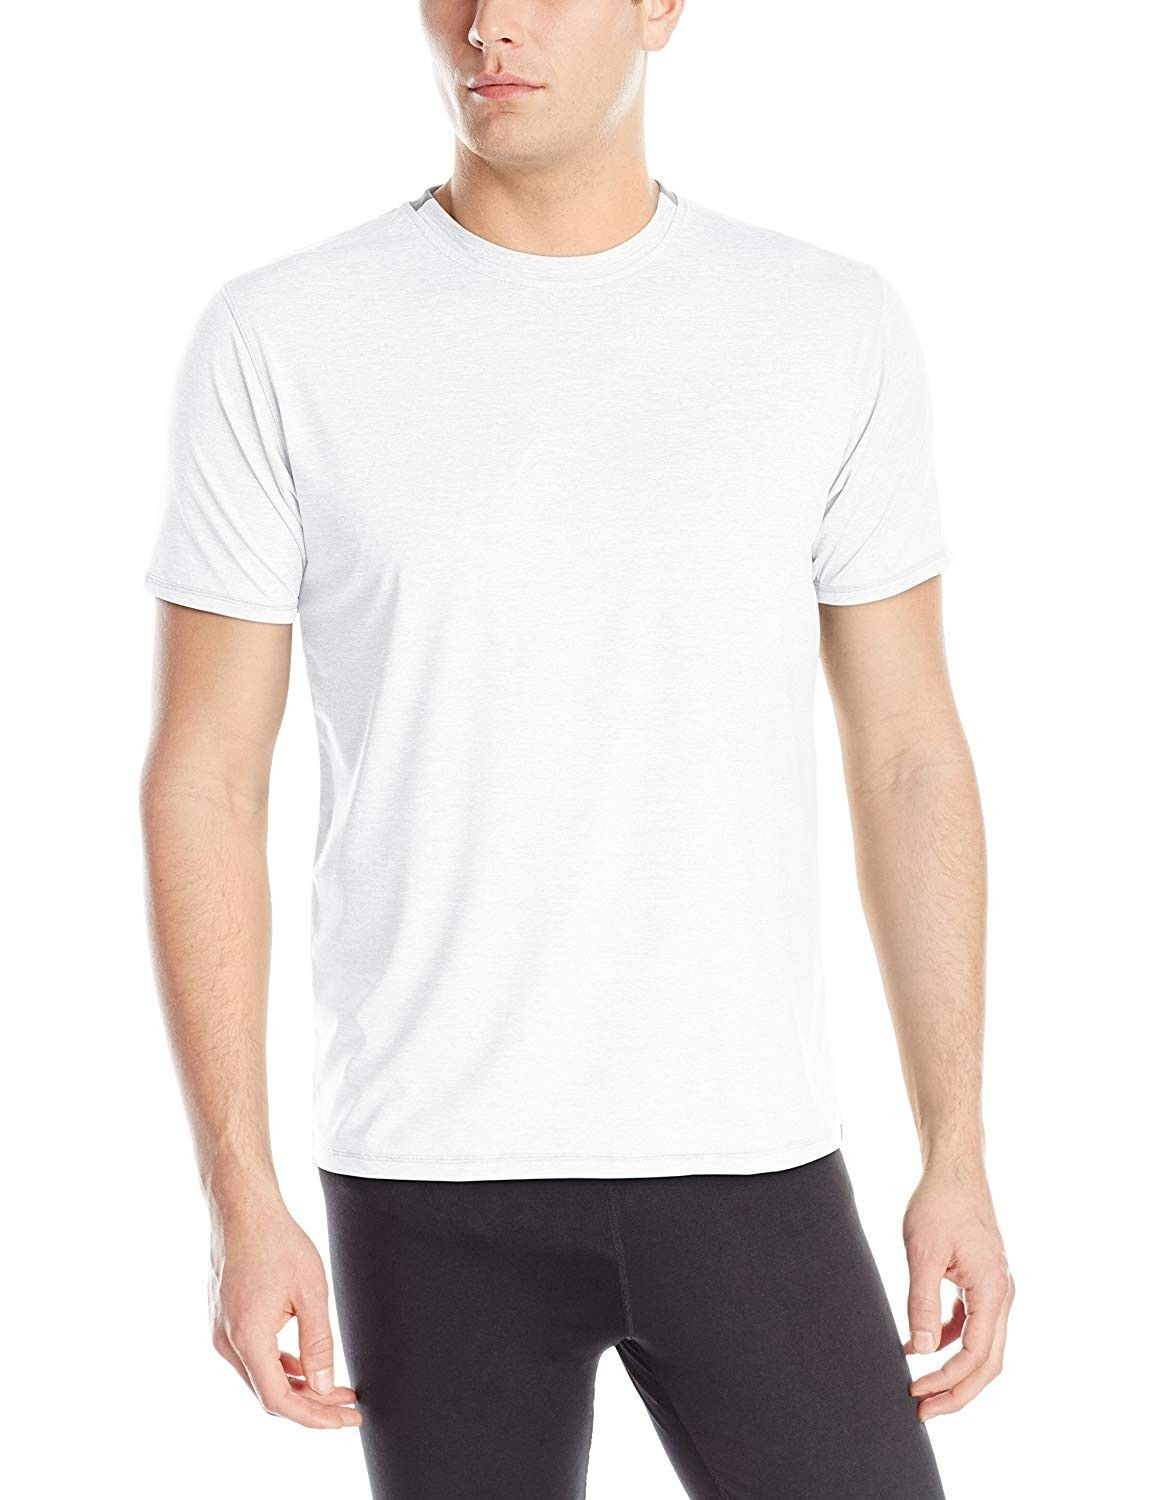 Men's Levity Shortsleeve Tee Shirt - Nickel - CJ11NYIIGYT - Sports & Fitness Clothing, Men, Shirts...